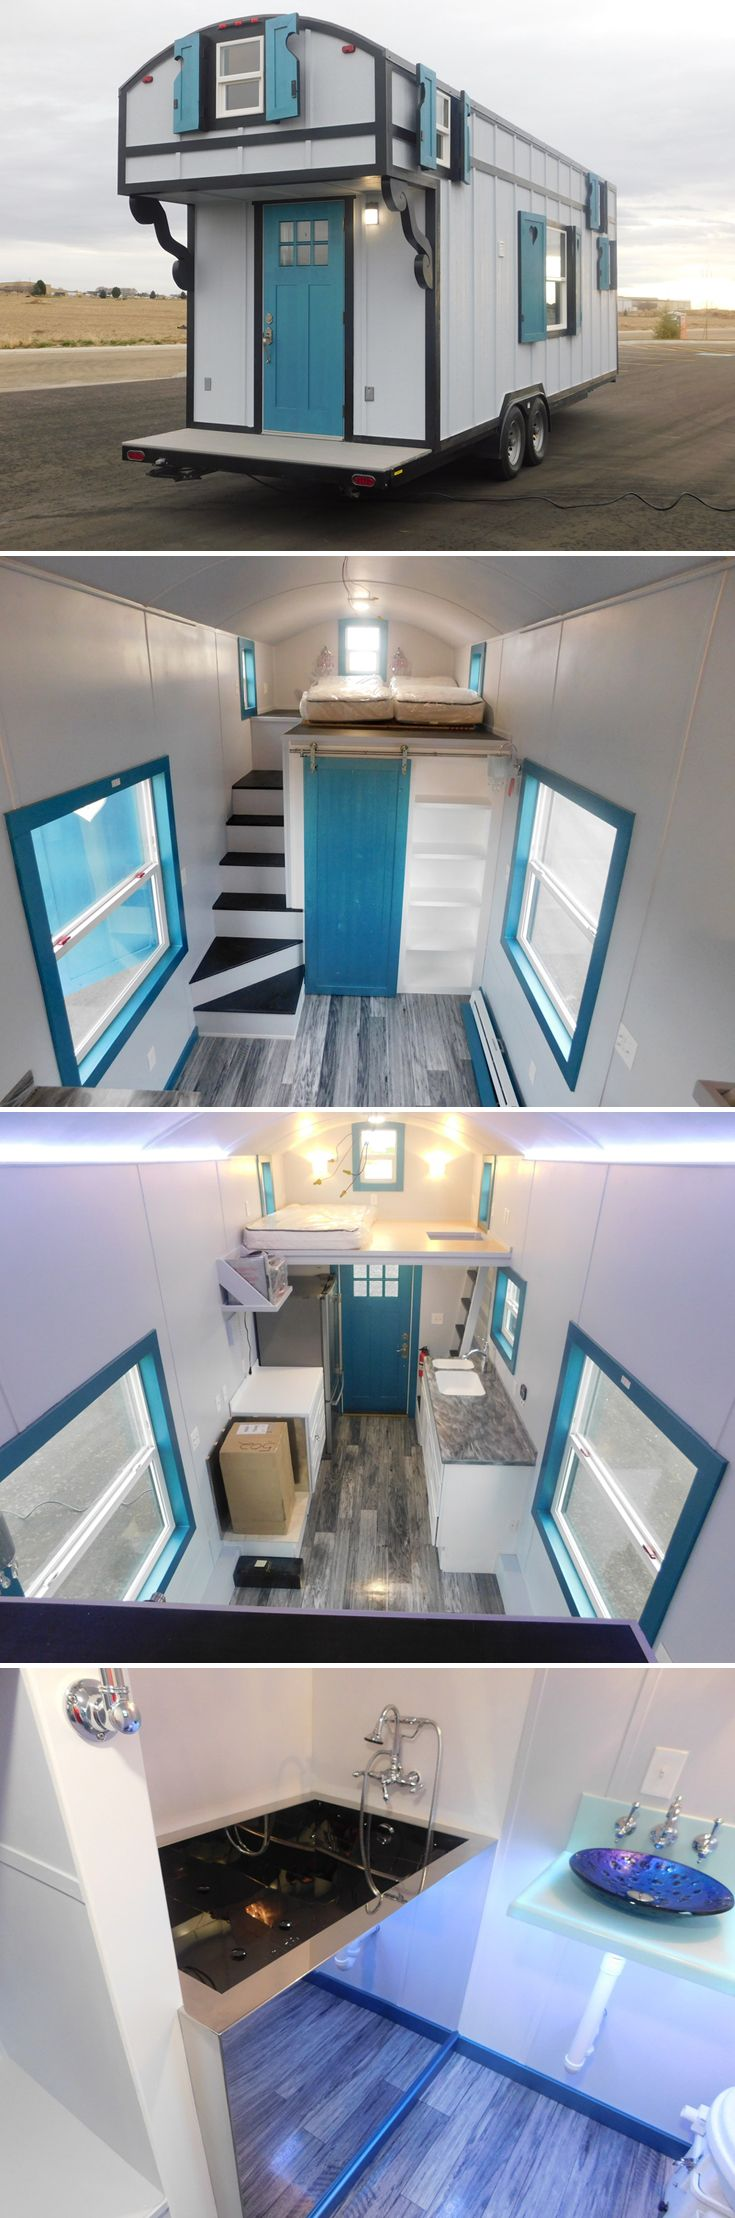 This highly customized 28' French Storyteller tiny house is complete with chandeliers, window shutters, a barrel roof, and Grand Victorian door knob.